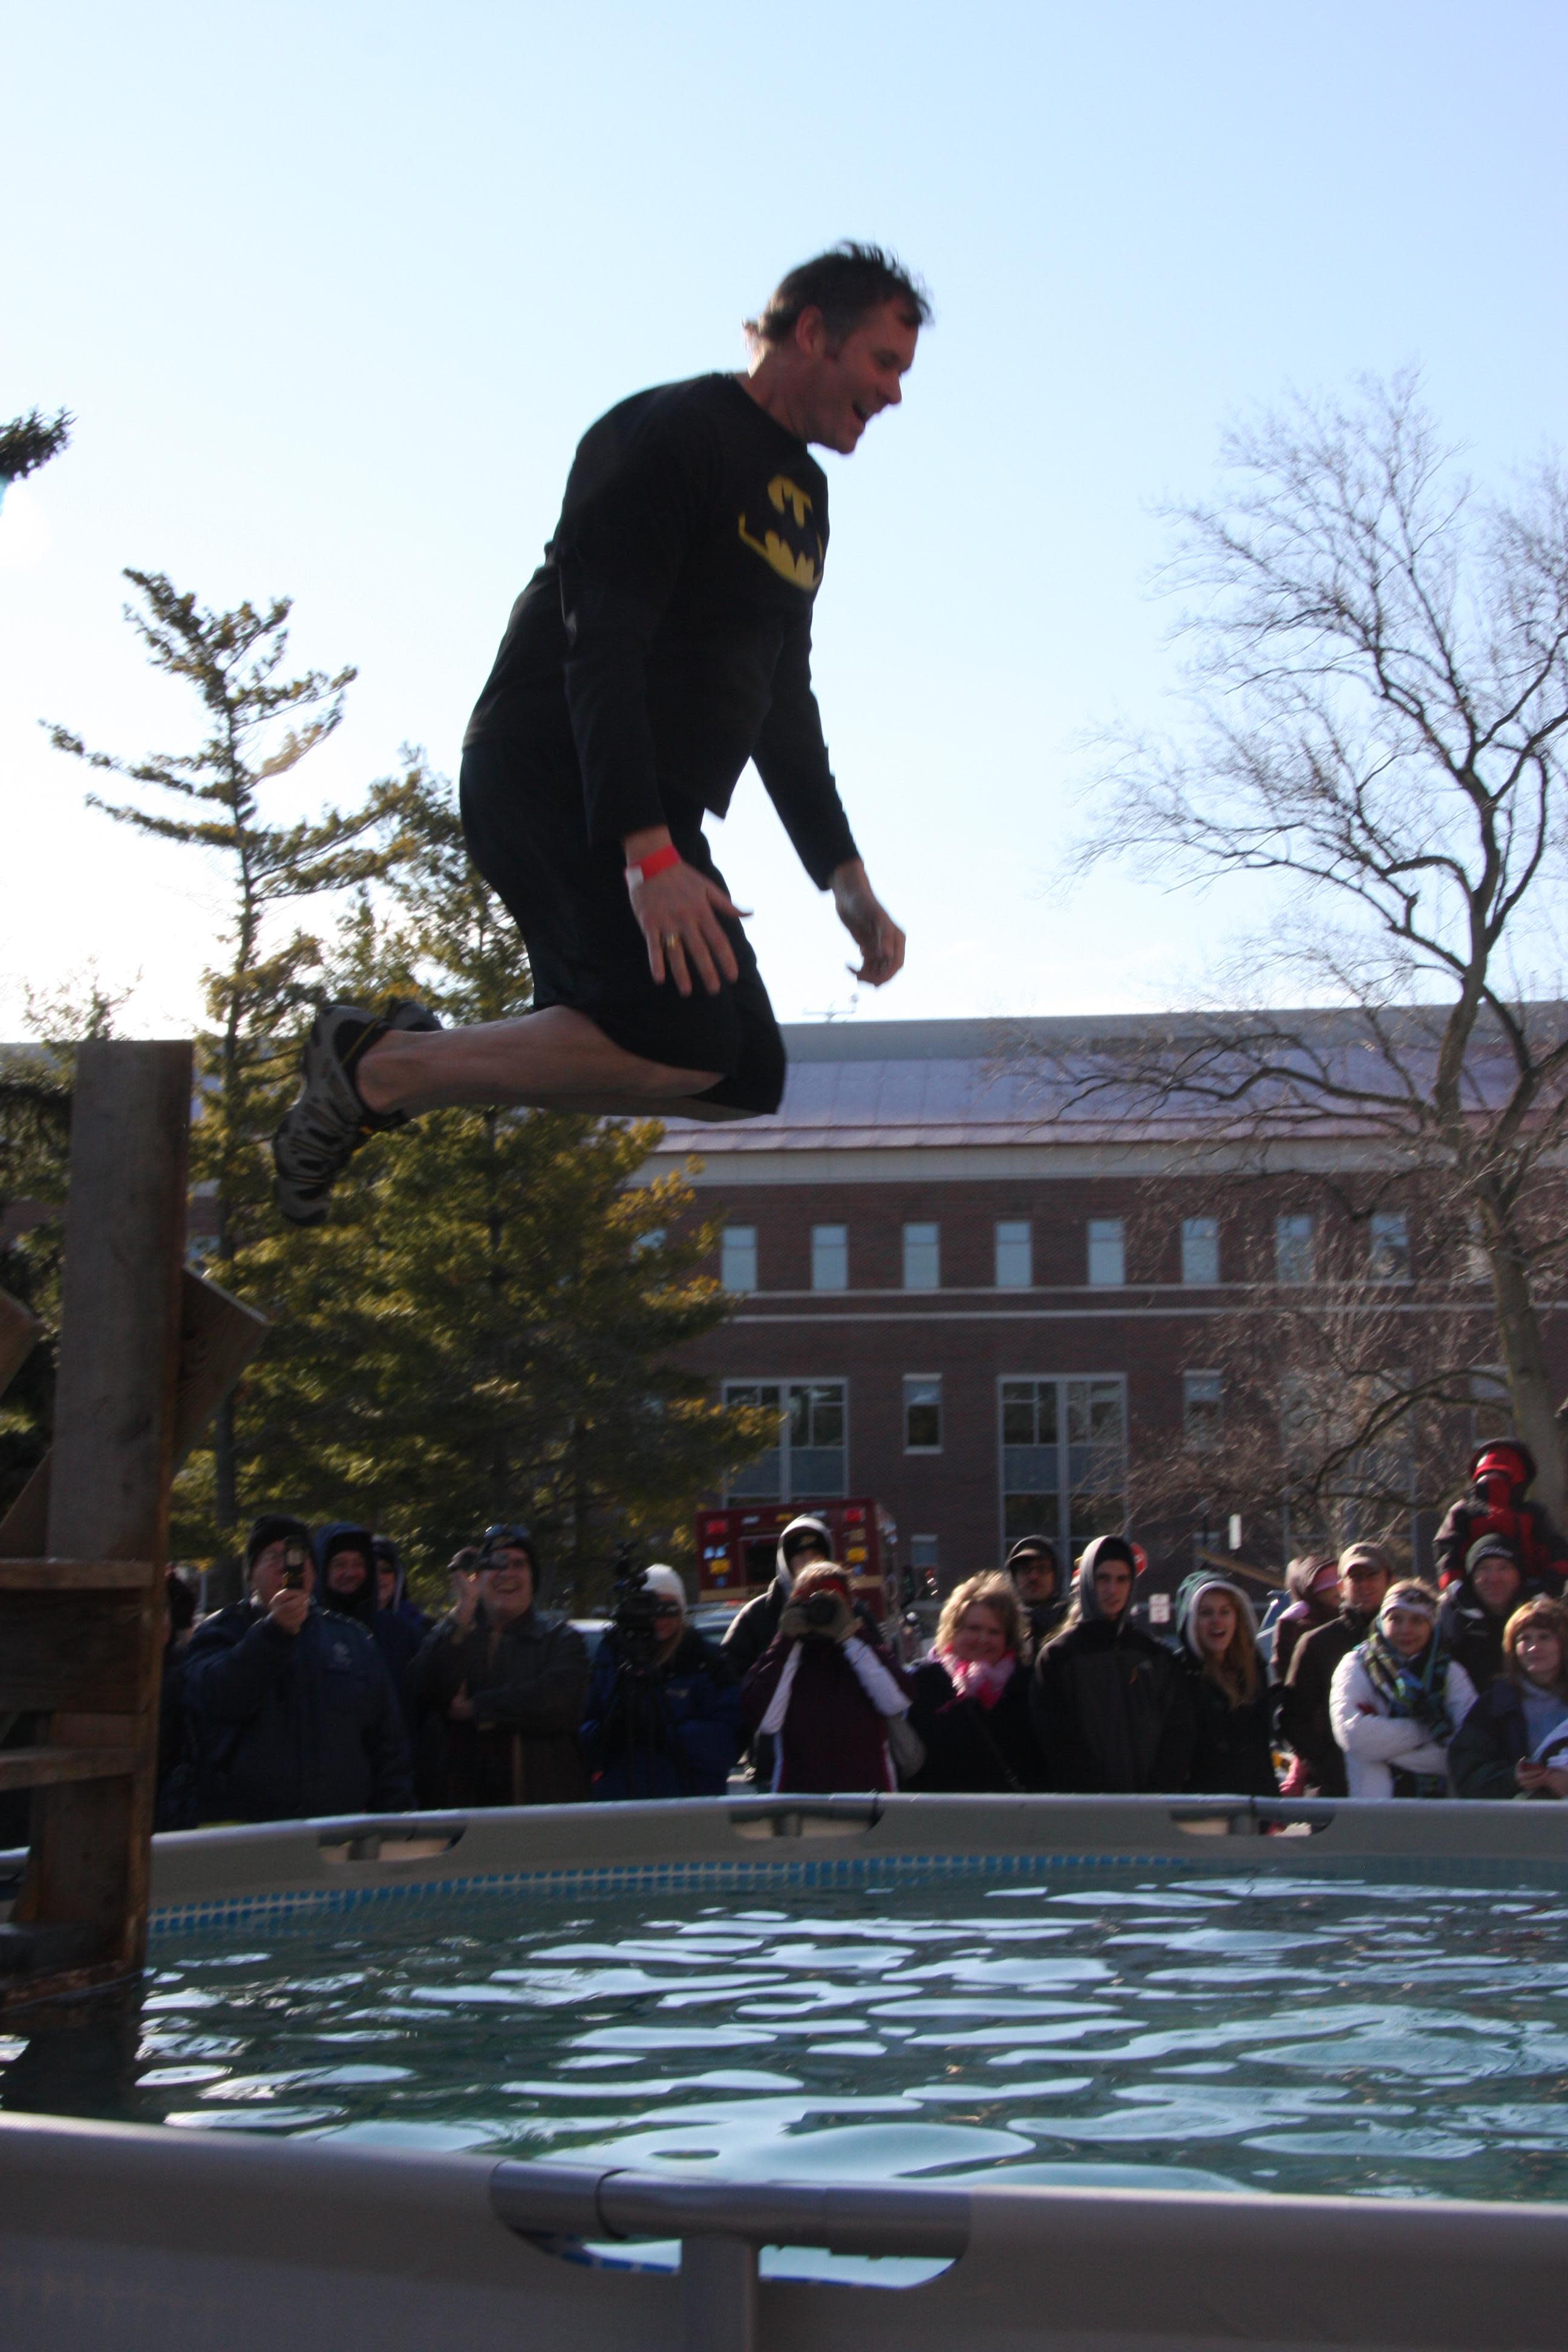 Mayor John Dennis taking the plunge!